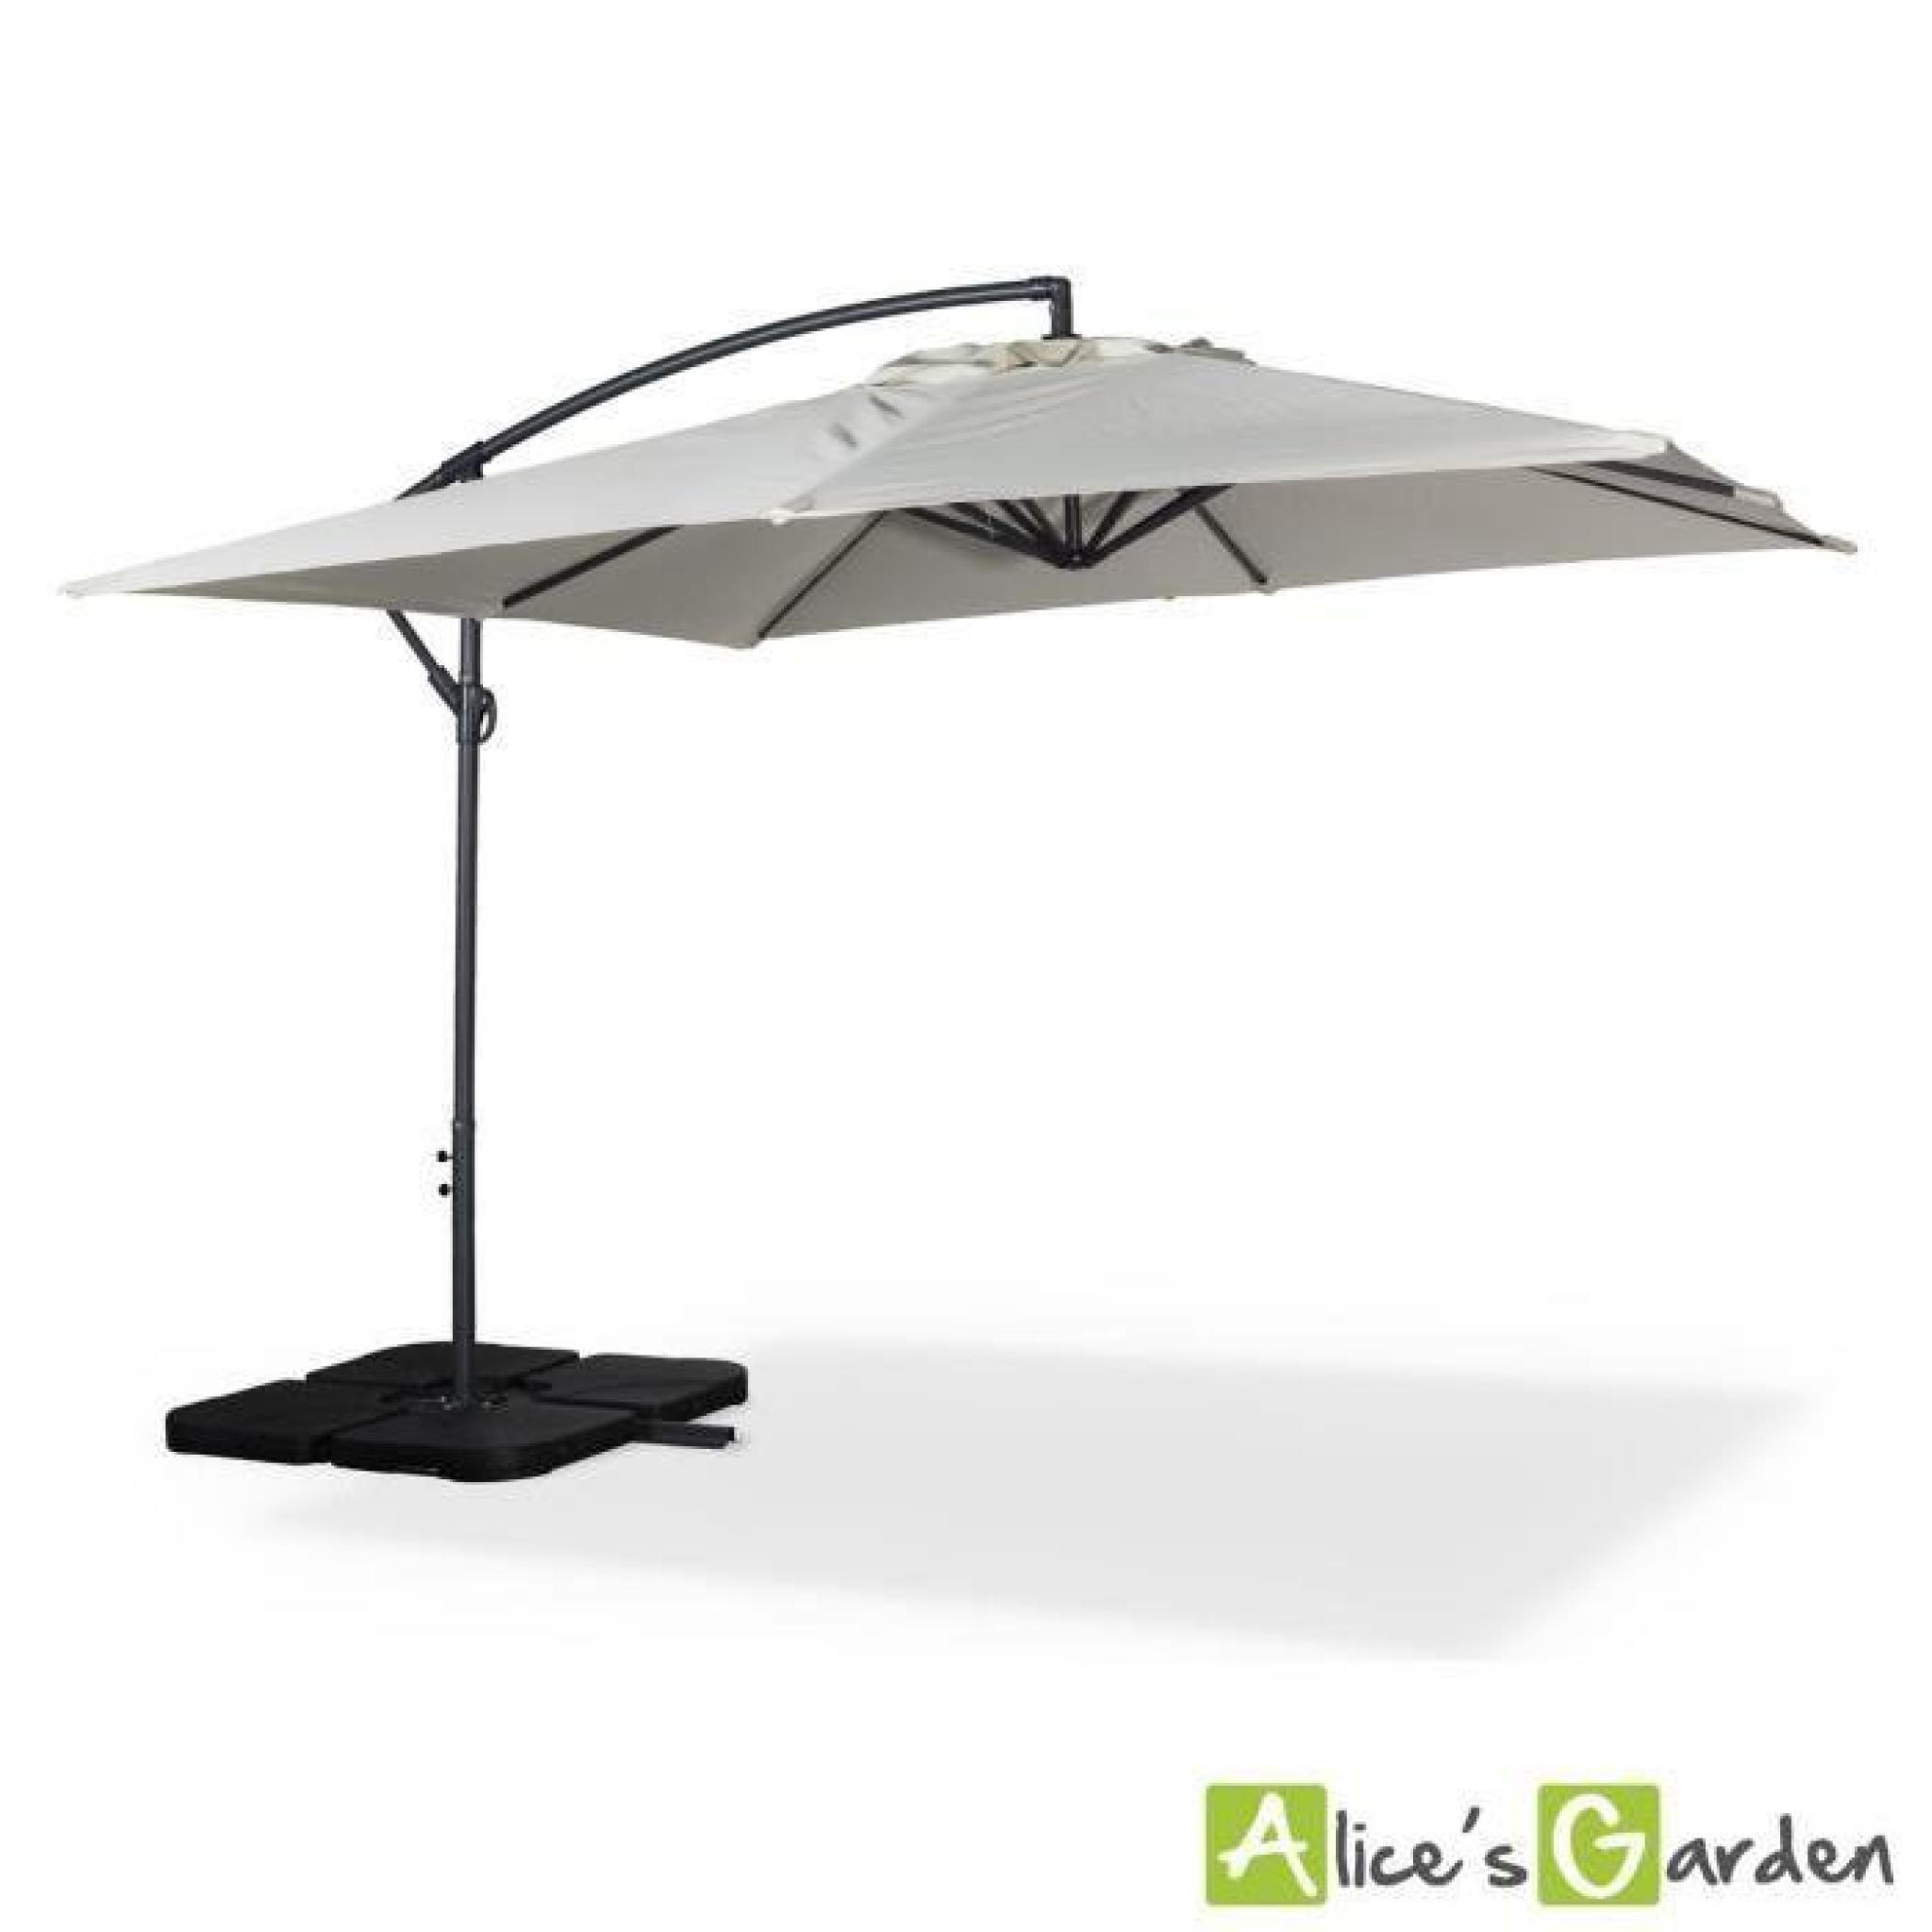 parasol d port carr 3x3m hardelot ecru achat vente parasol deporte pas cher. Black Bedroom Furniture Sets. Home Design Ideas